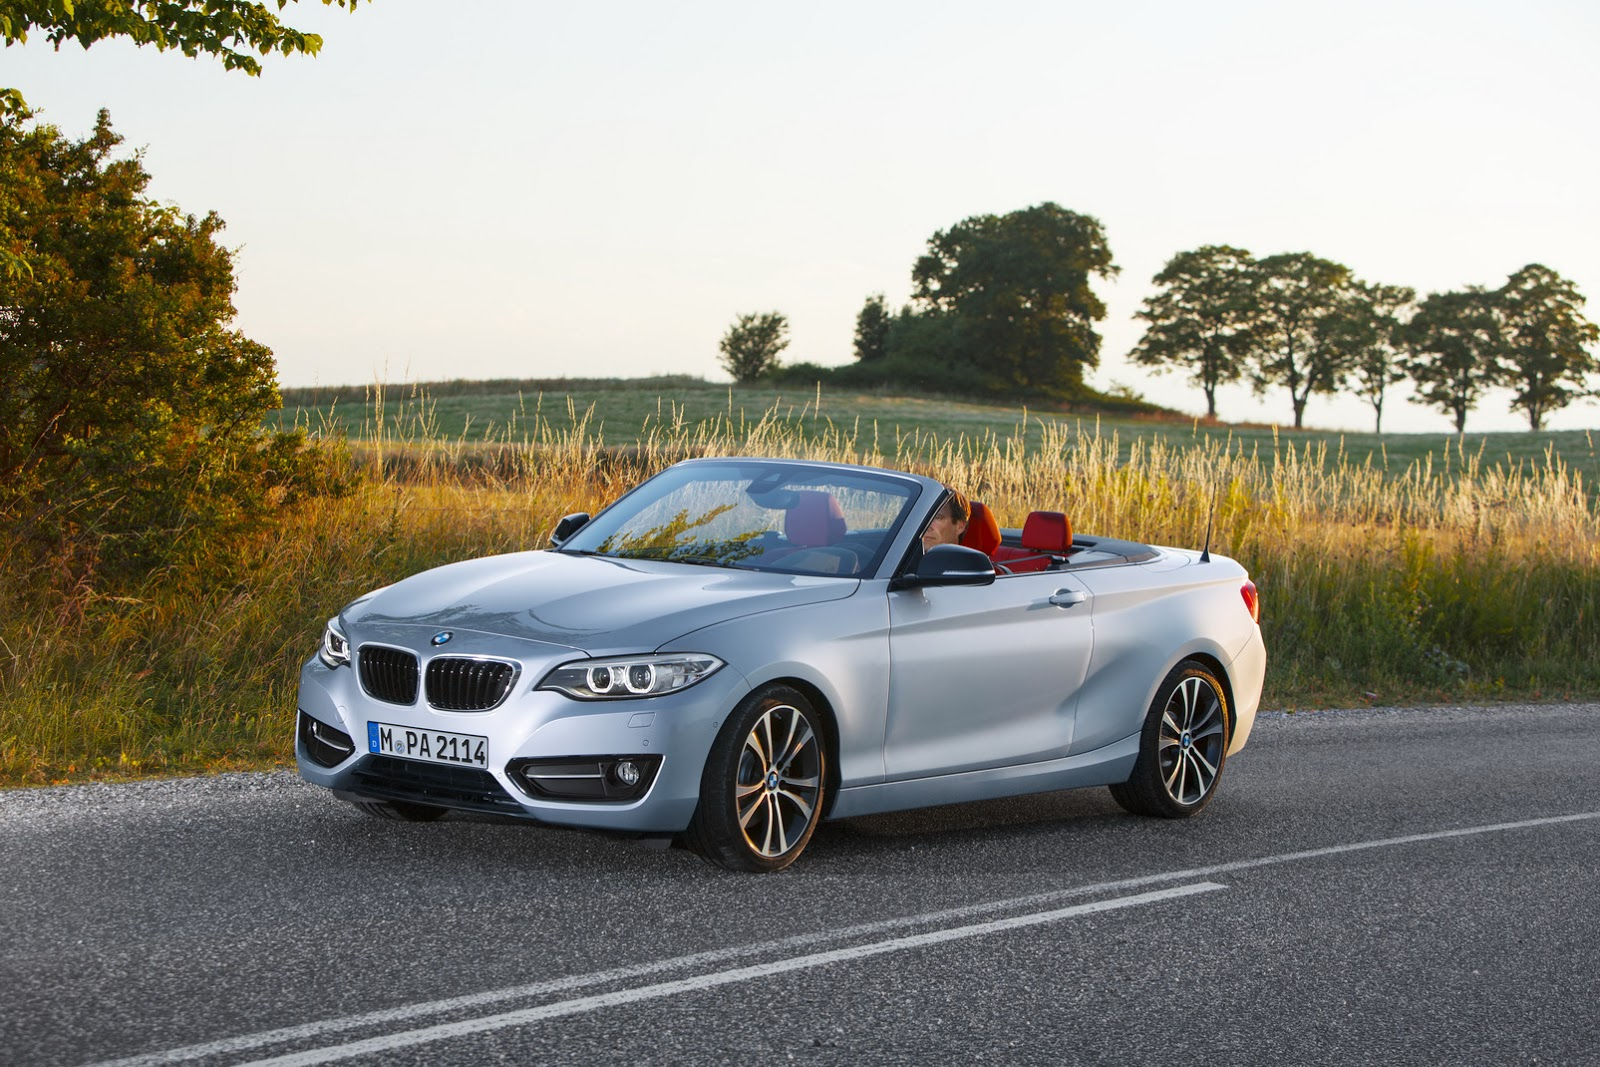 new bmw 2 series convertible photo gallery car gallery. Black Bedroom Furniture Sets. Home Design Ideas